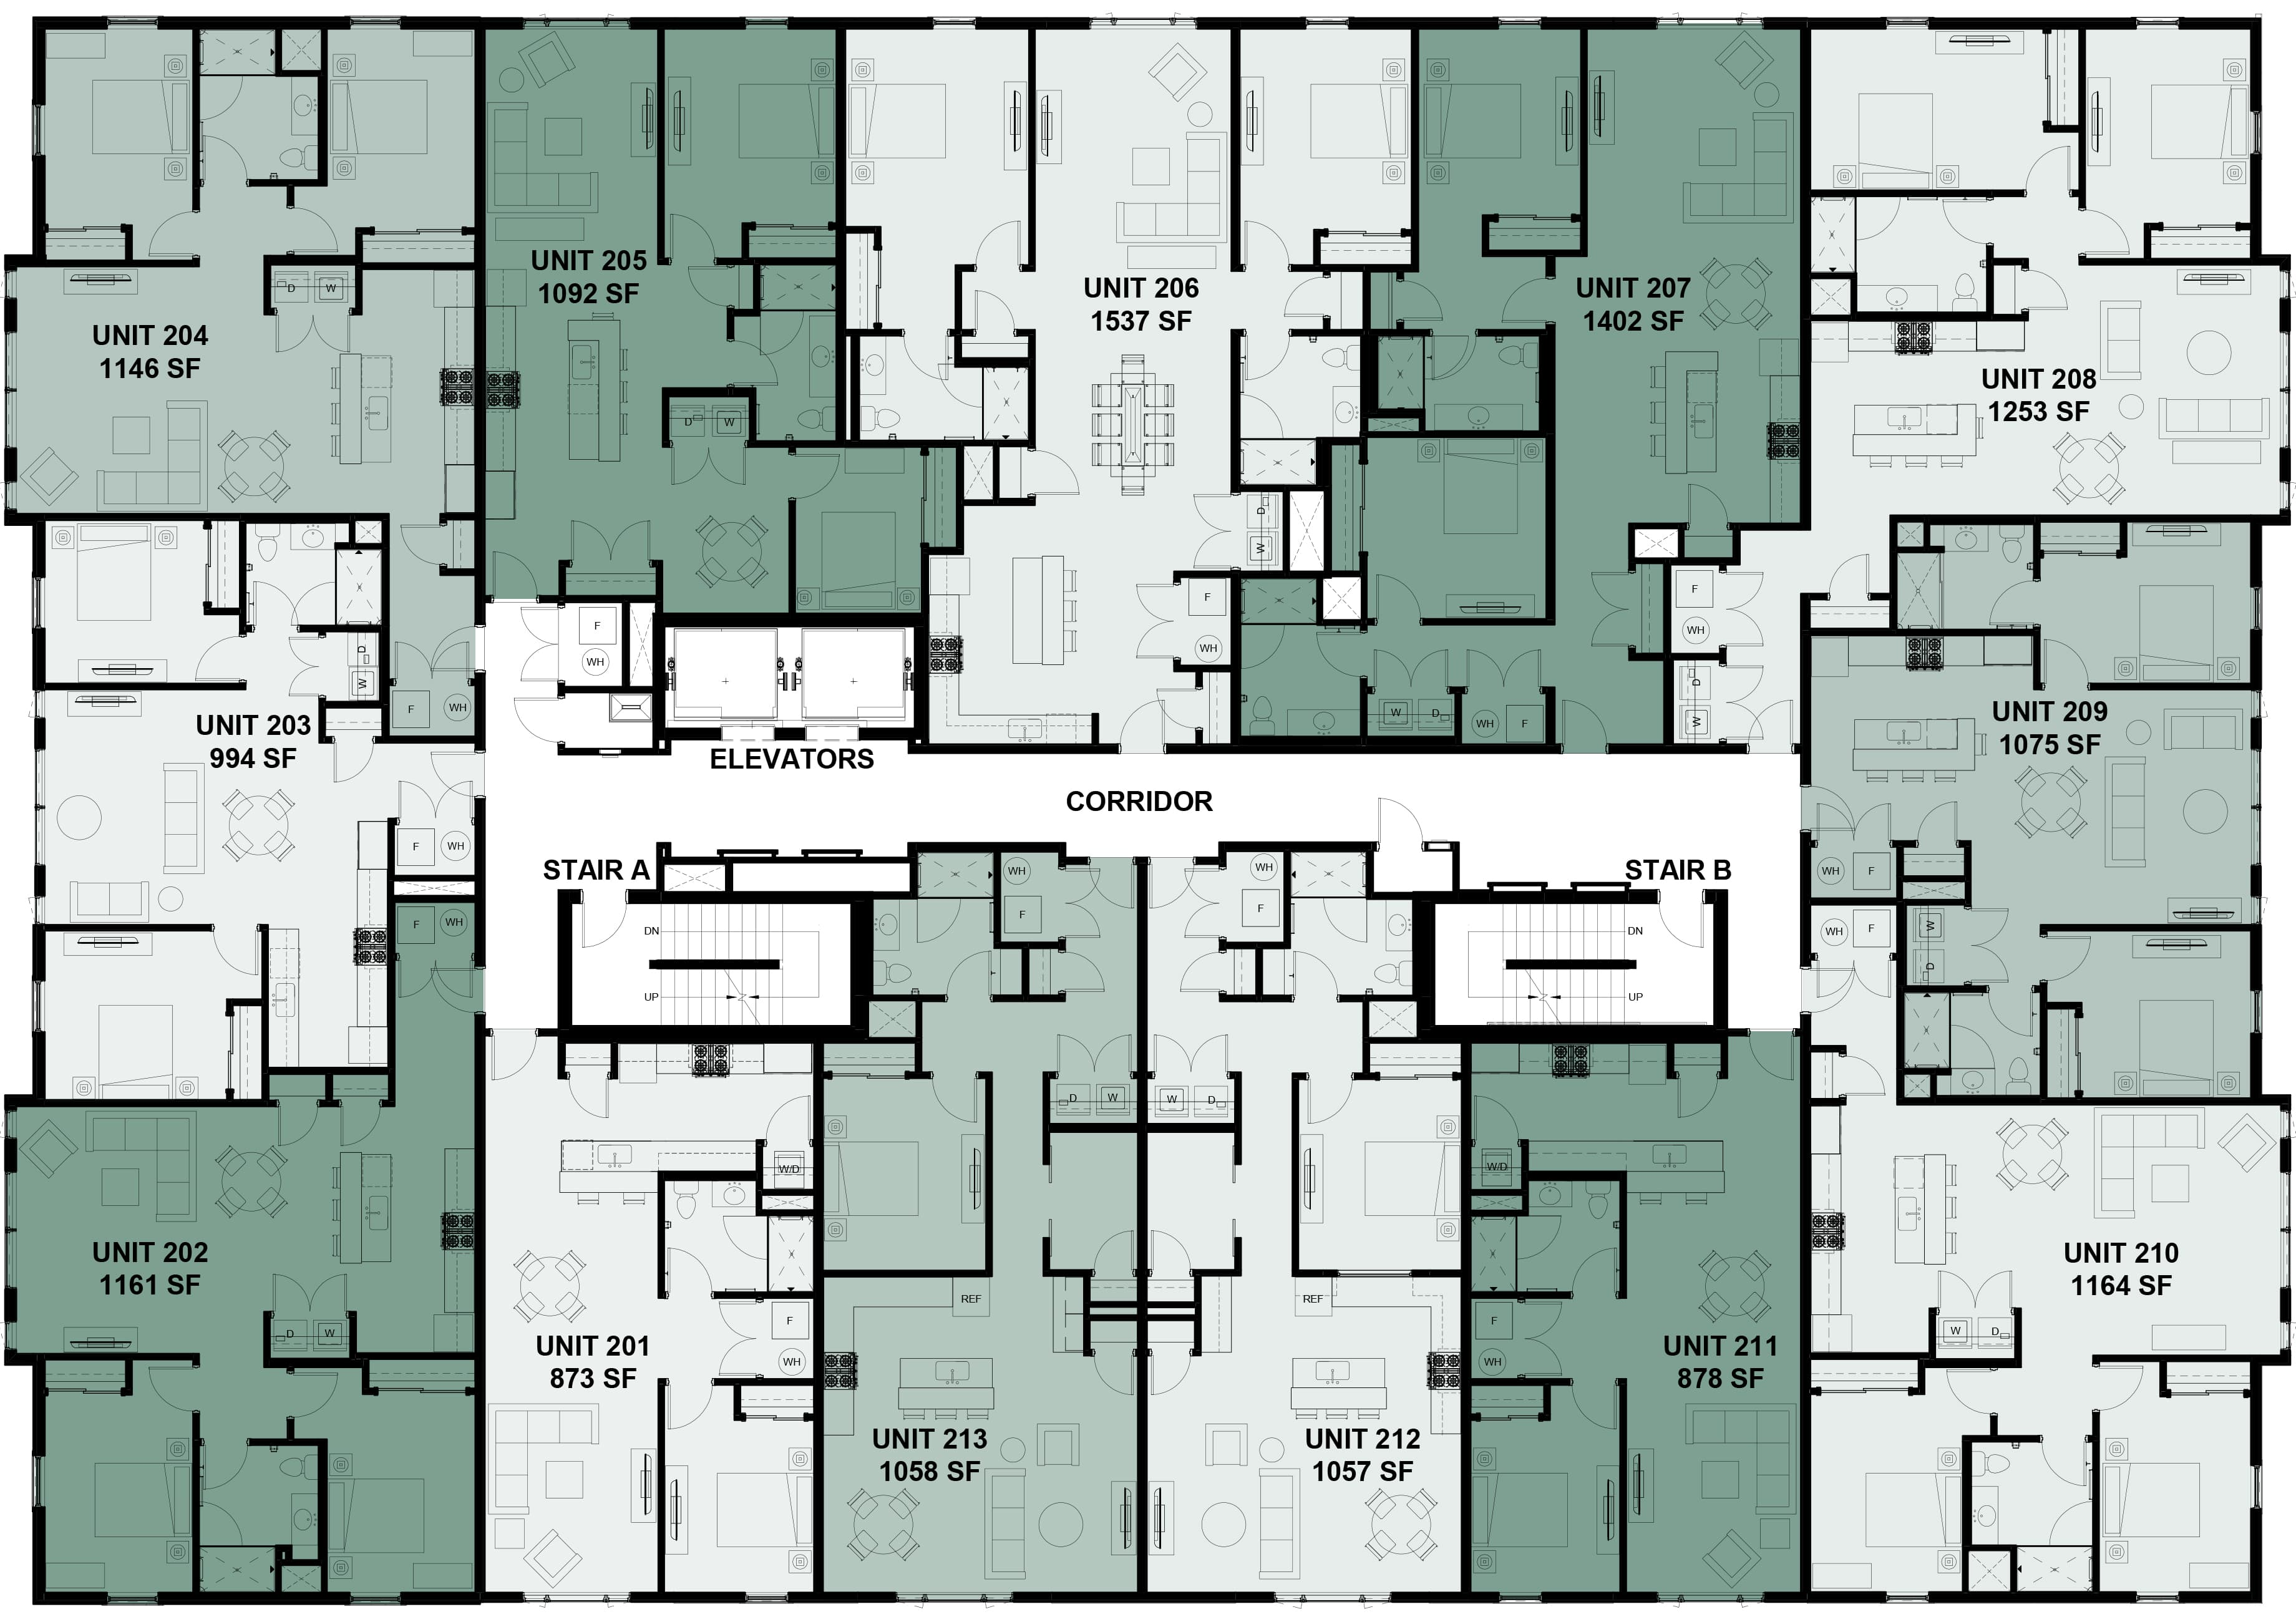 Plans for the Second Floor